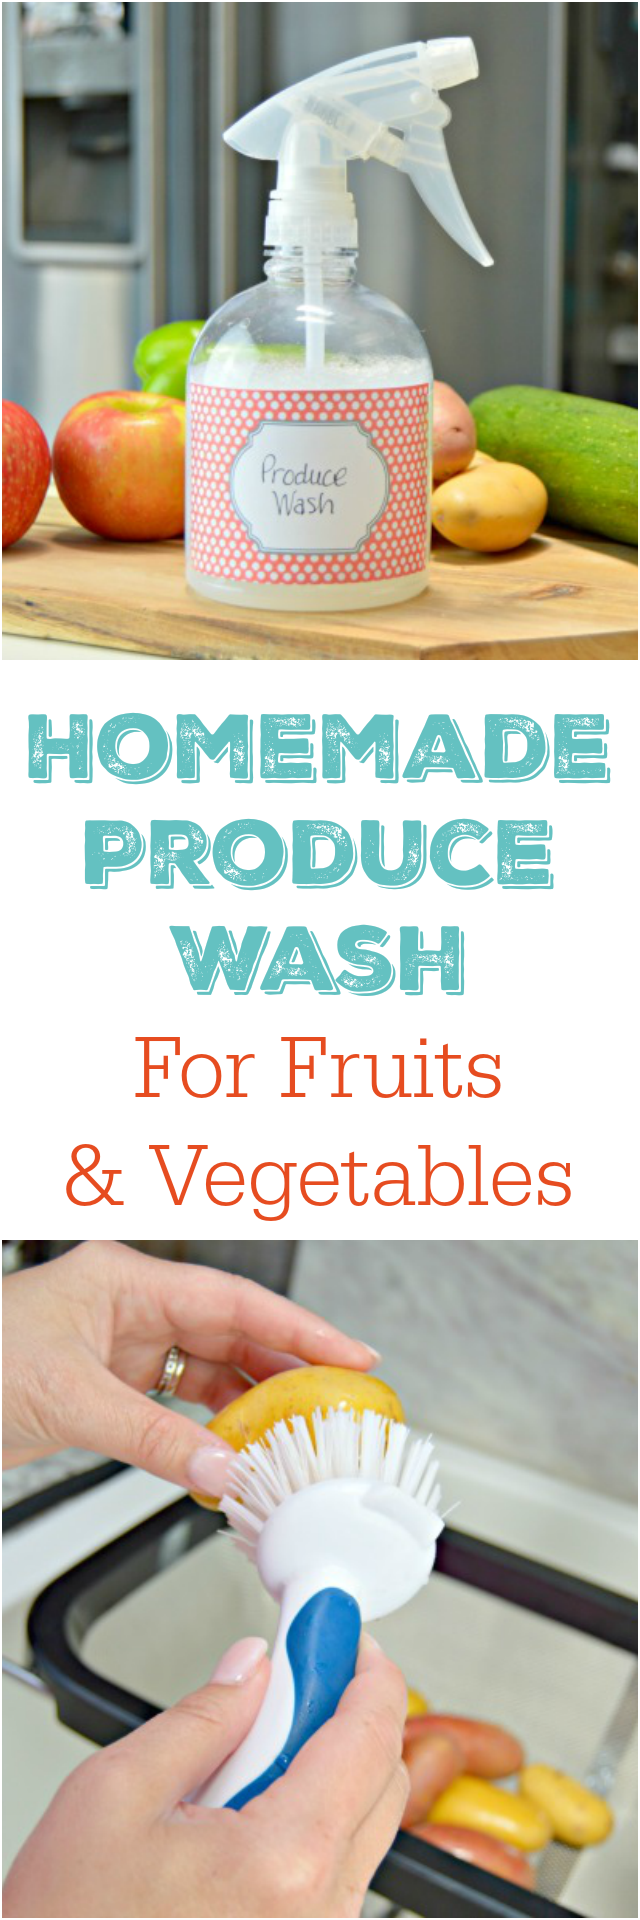 Homemade Produce Wash for Fruits and Vegetables - Chemical Free